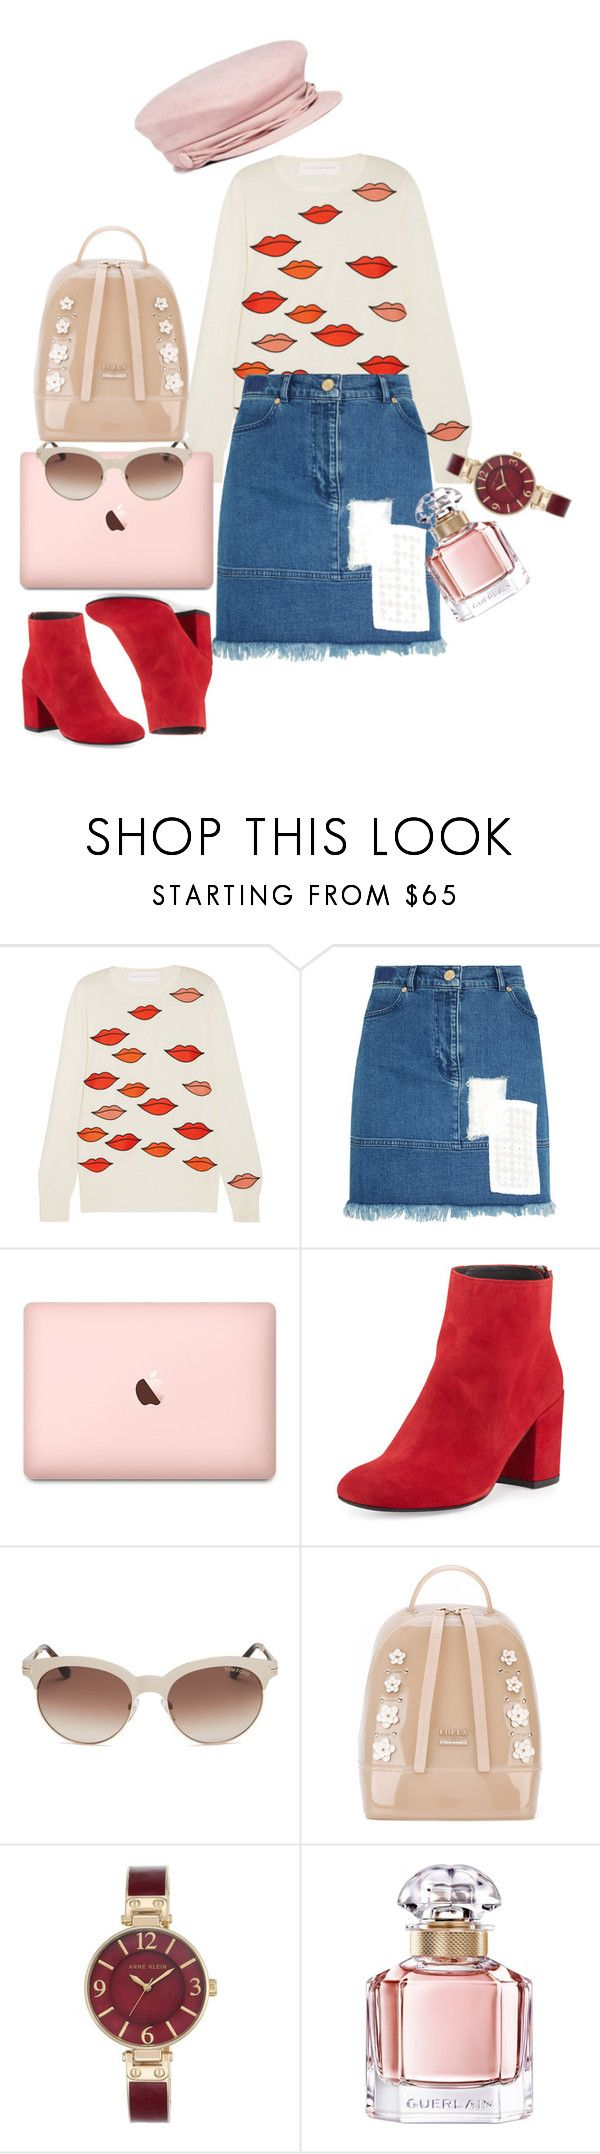 """""""Baby"""" by loviette ❤ liked on Polyvore featuring Victoria, Victoria Beckham, House of Holland, Stuart Weitzman, Tom Ford, Furla, Anne Klein, Guerlain and Maison Michel"""